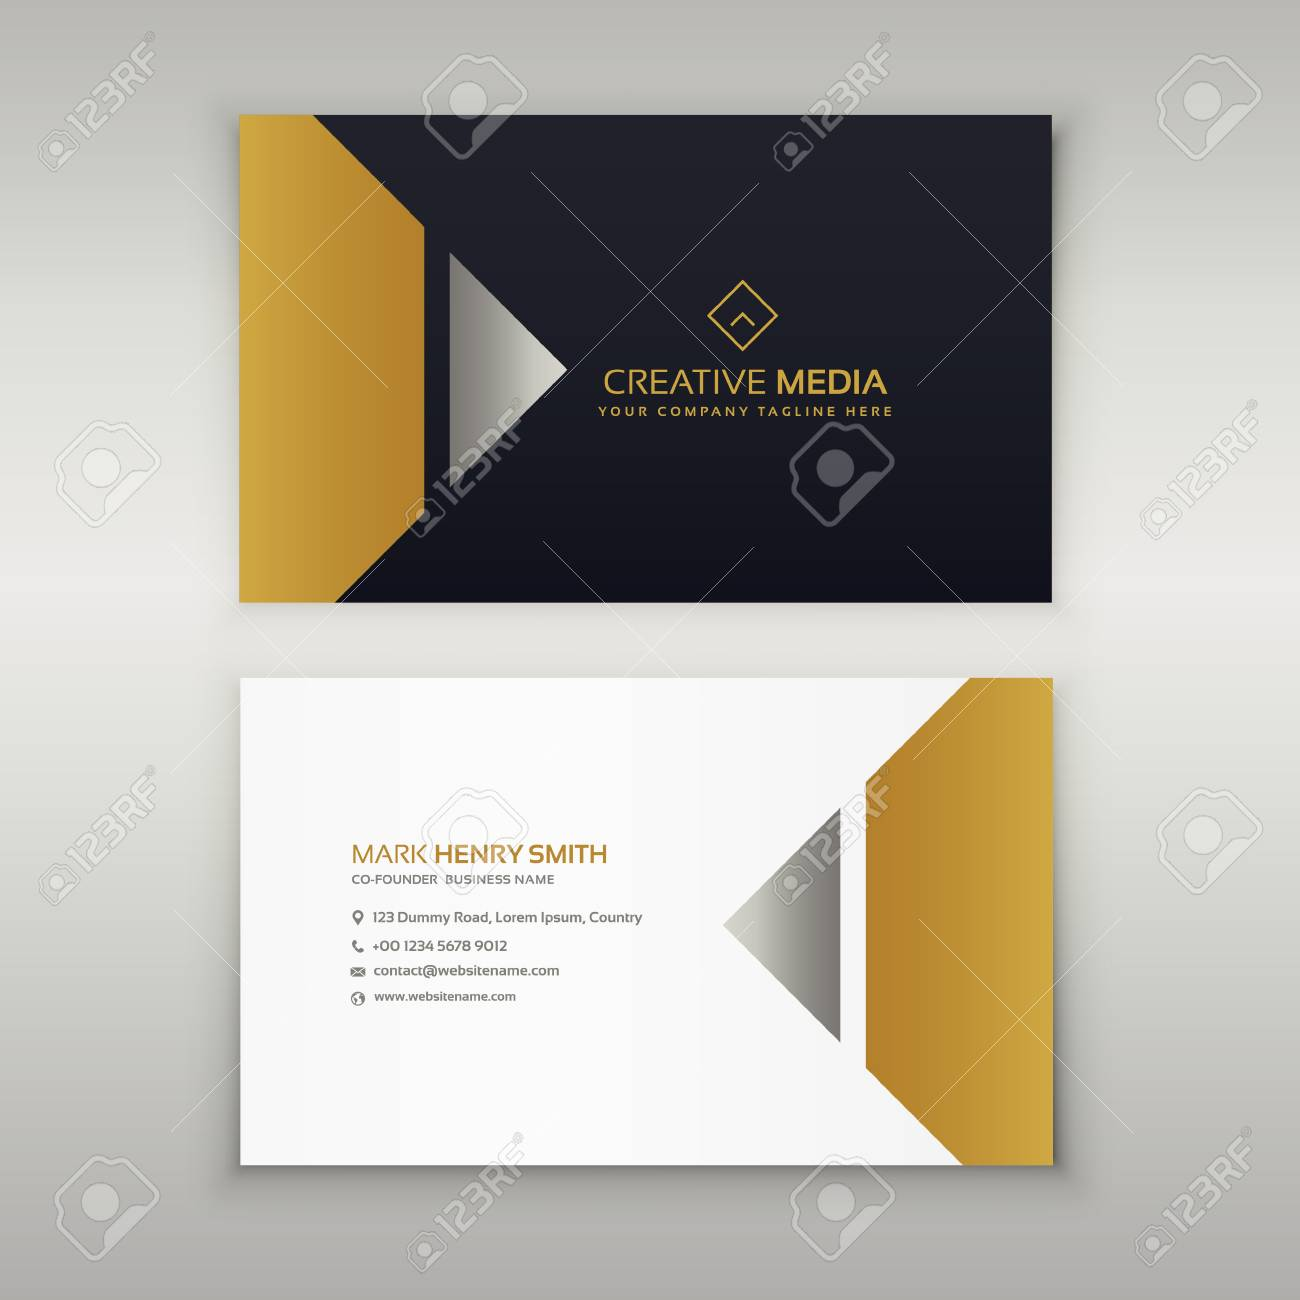 Premium Business Card Design In Golden Theme Royalty Free Cliparts ...